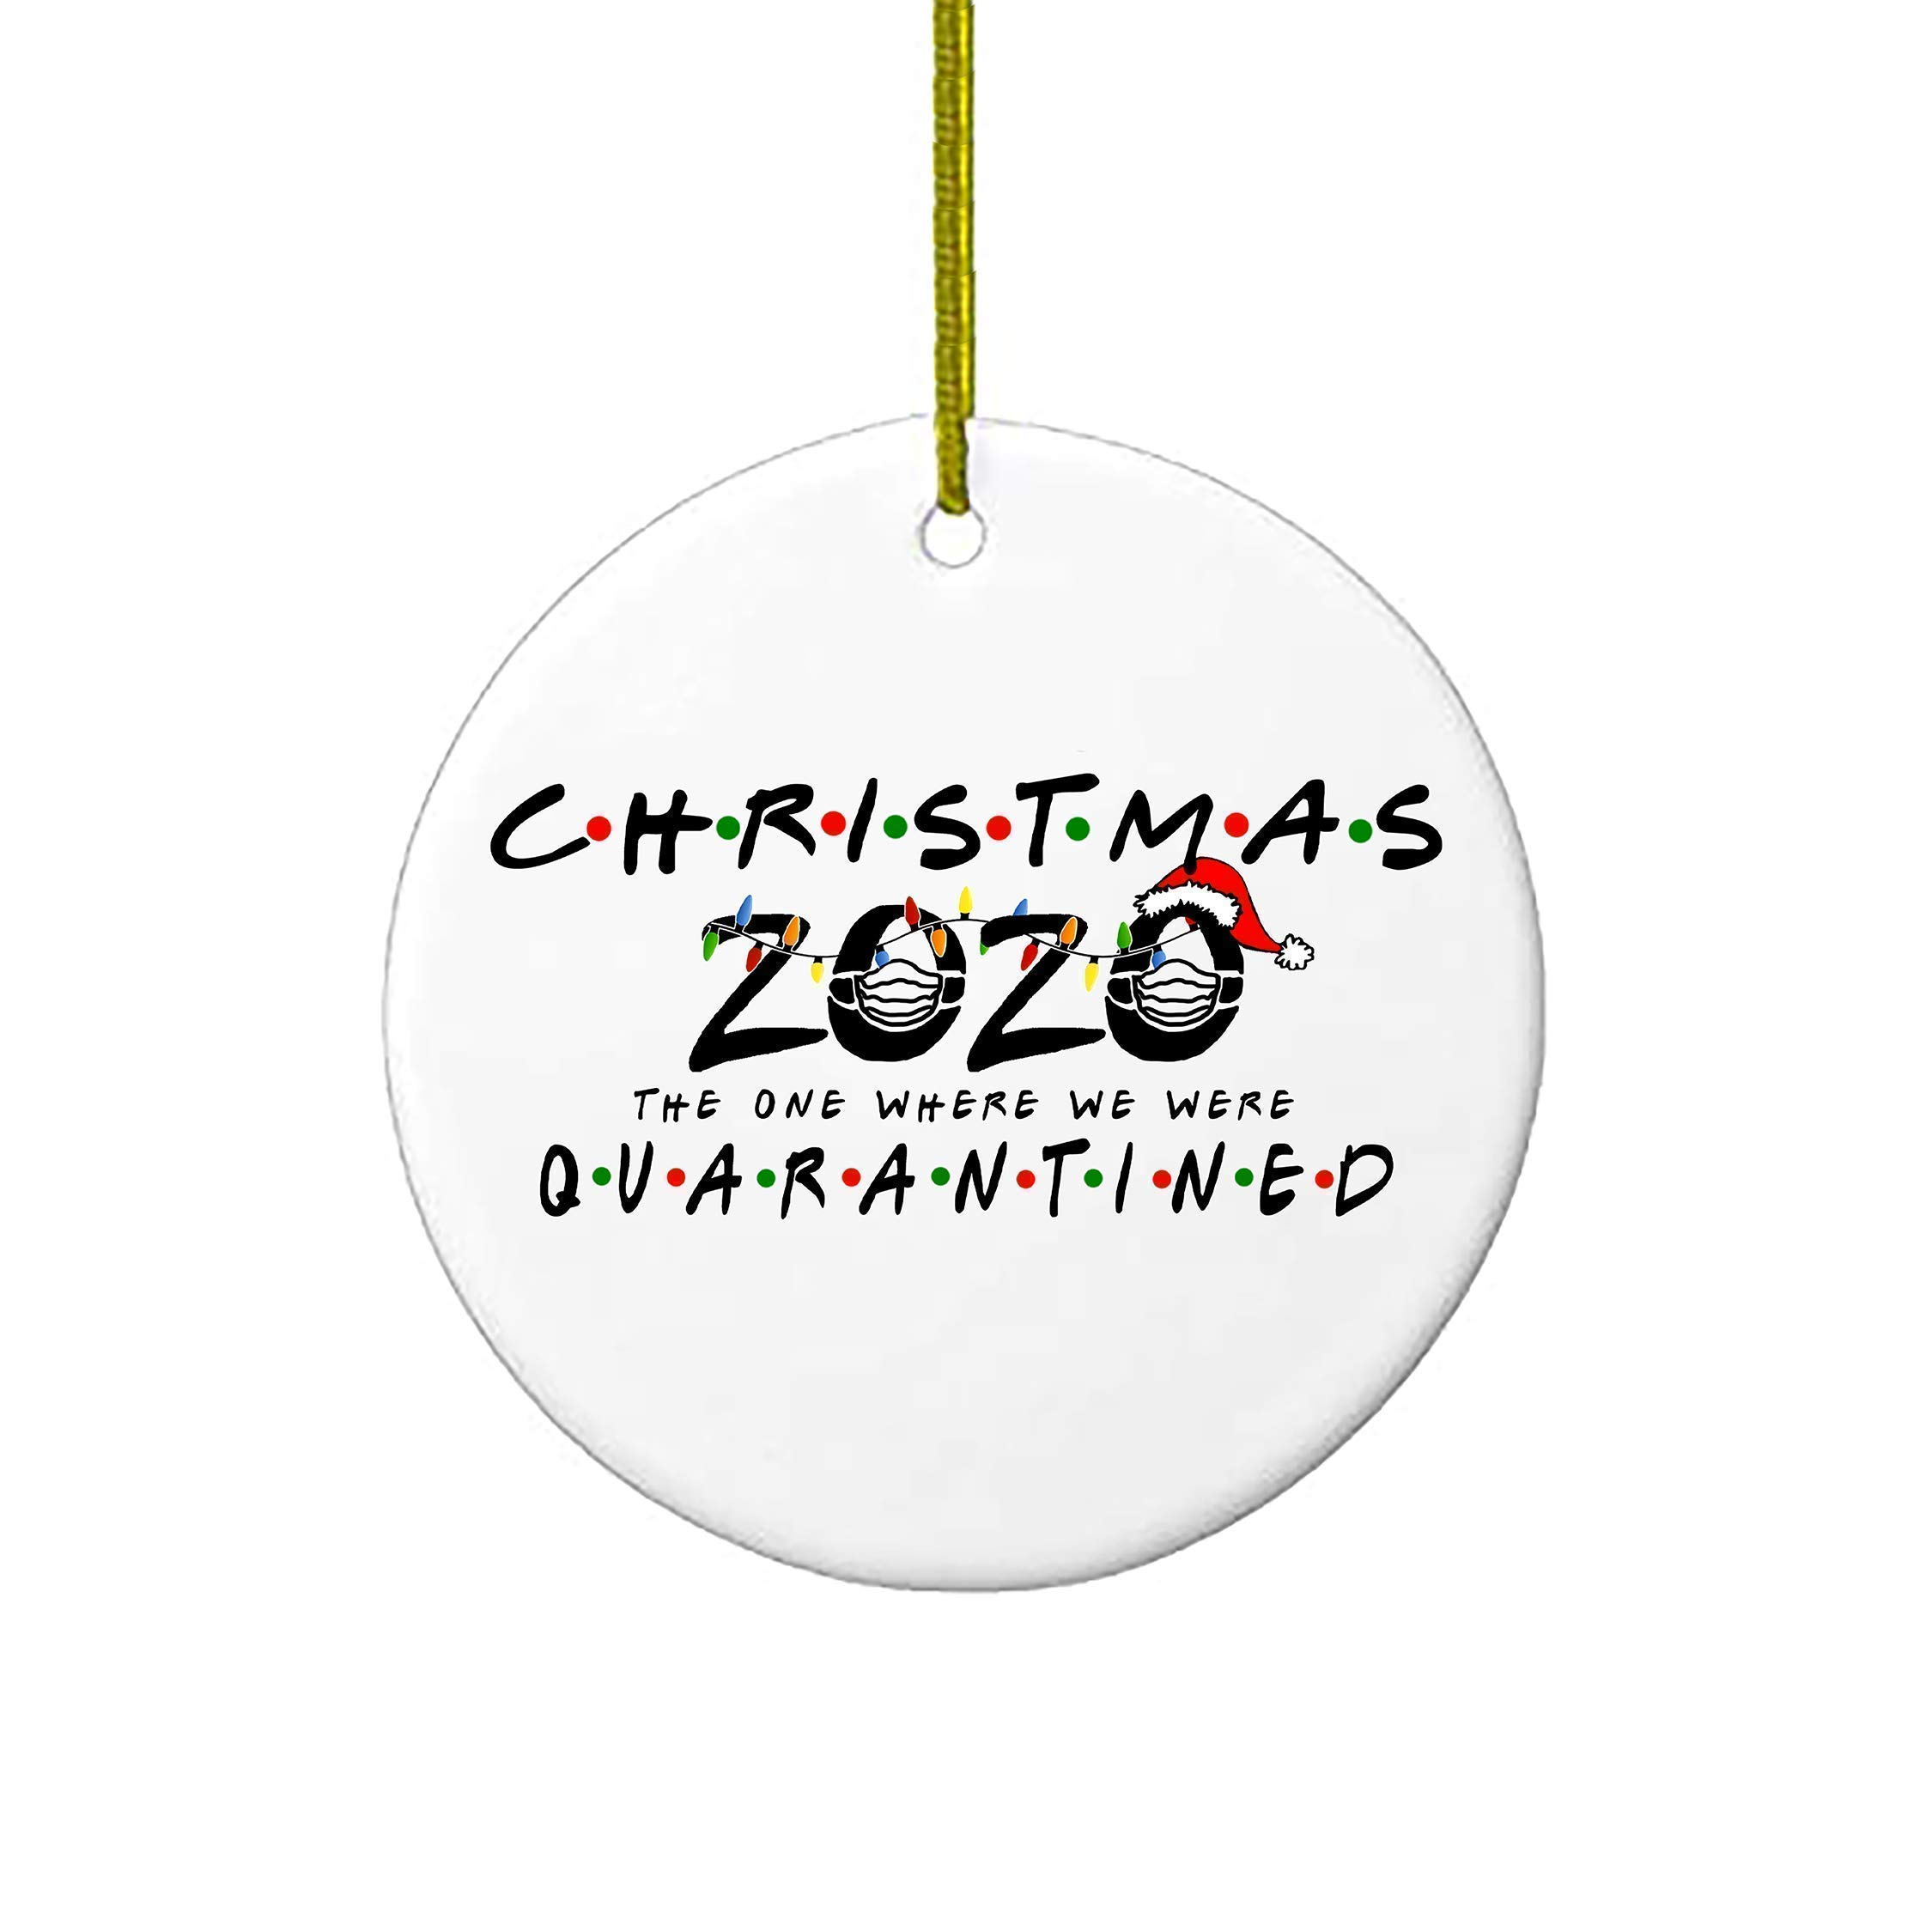 2020 Christmas Ornaments Friends Quarantine Gift Holiday Xmas Tree Decorations Ornament The One Where We Were Quarantined Social Distancing Funny Novelty Personalized Gifts